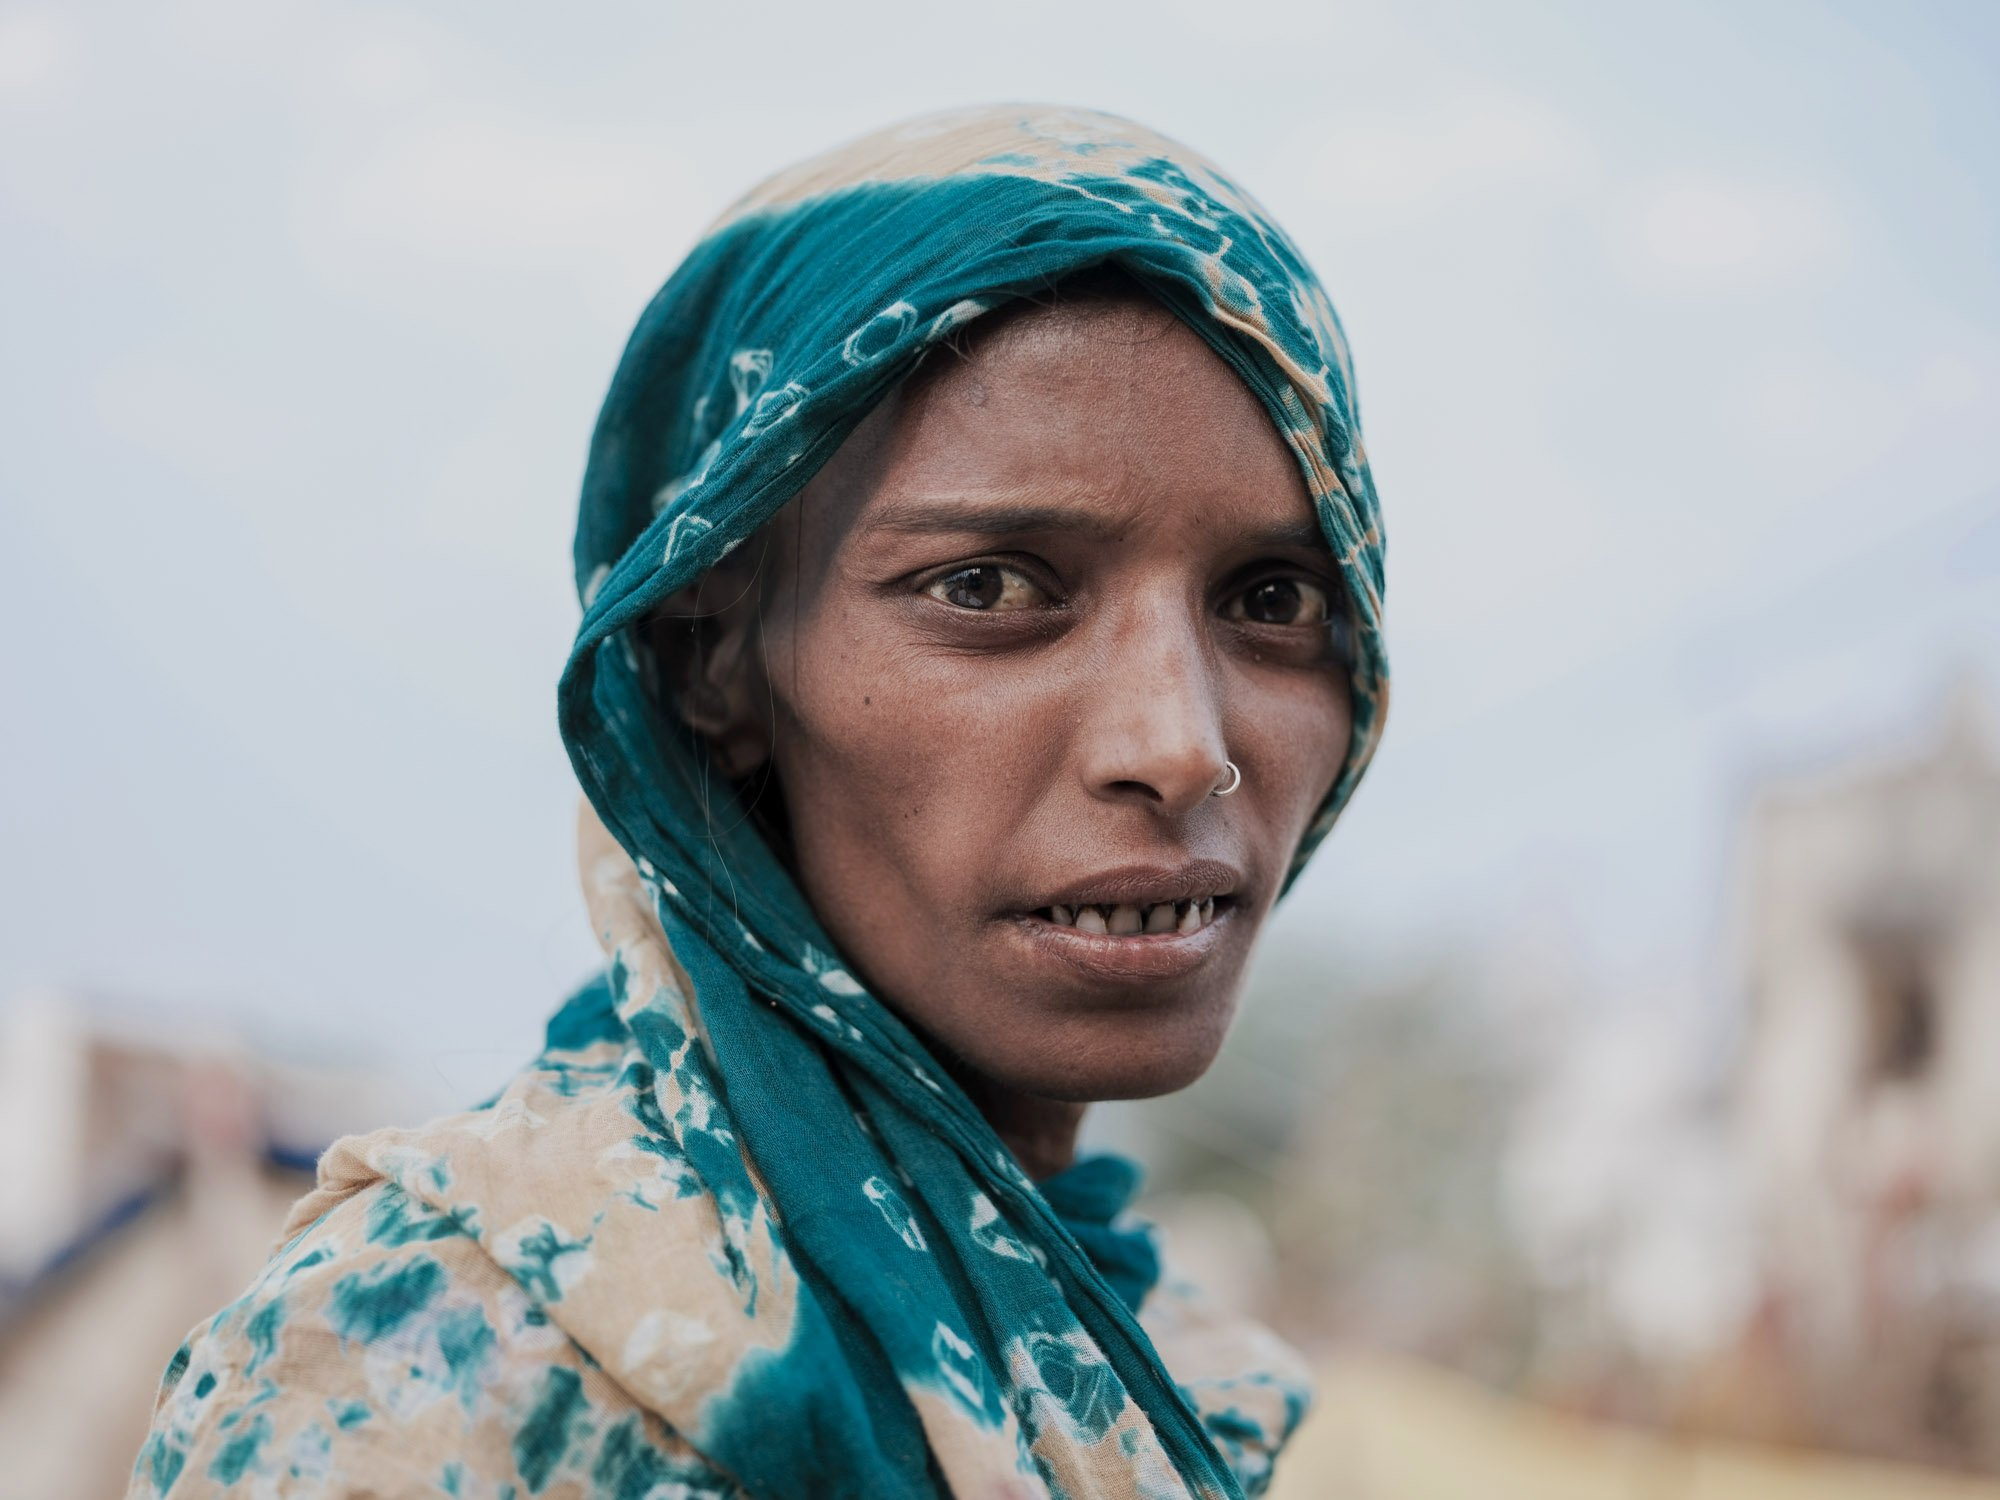 portrait lagy Gypsy Kalbelia tribe nomad Rajasthan India Documentary Photography Jose Jeuland Photographer print fine art